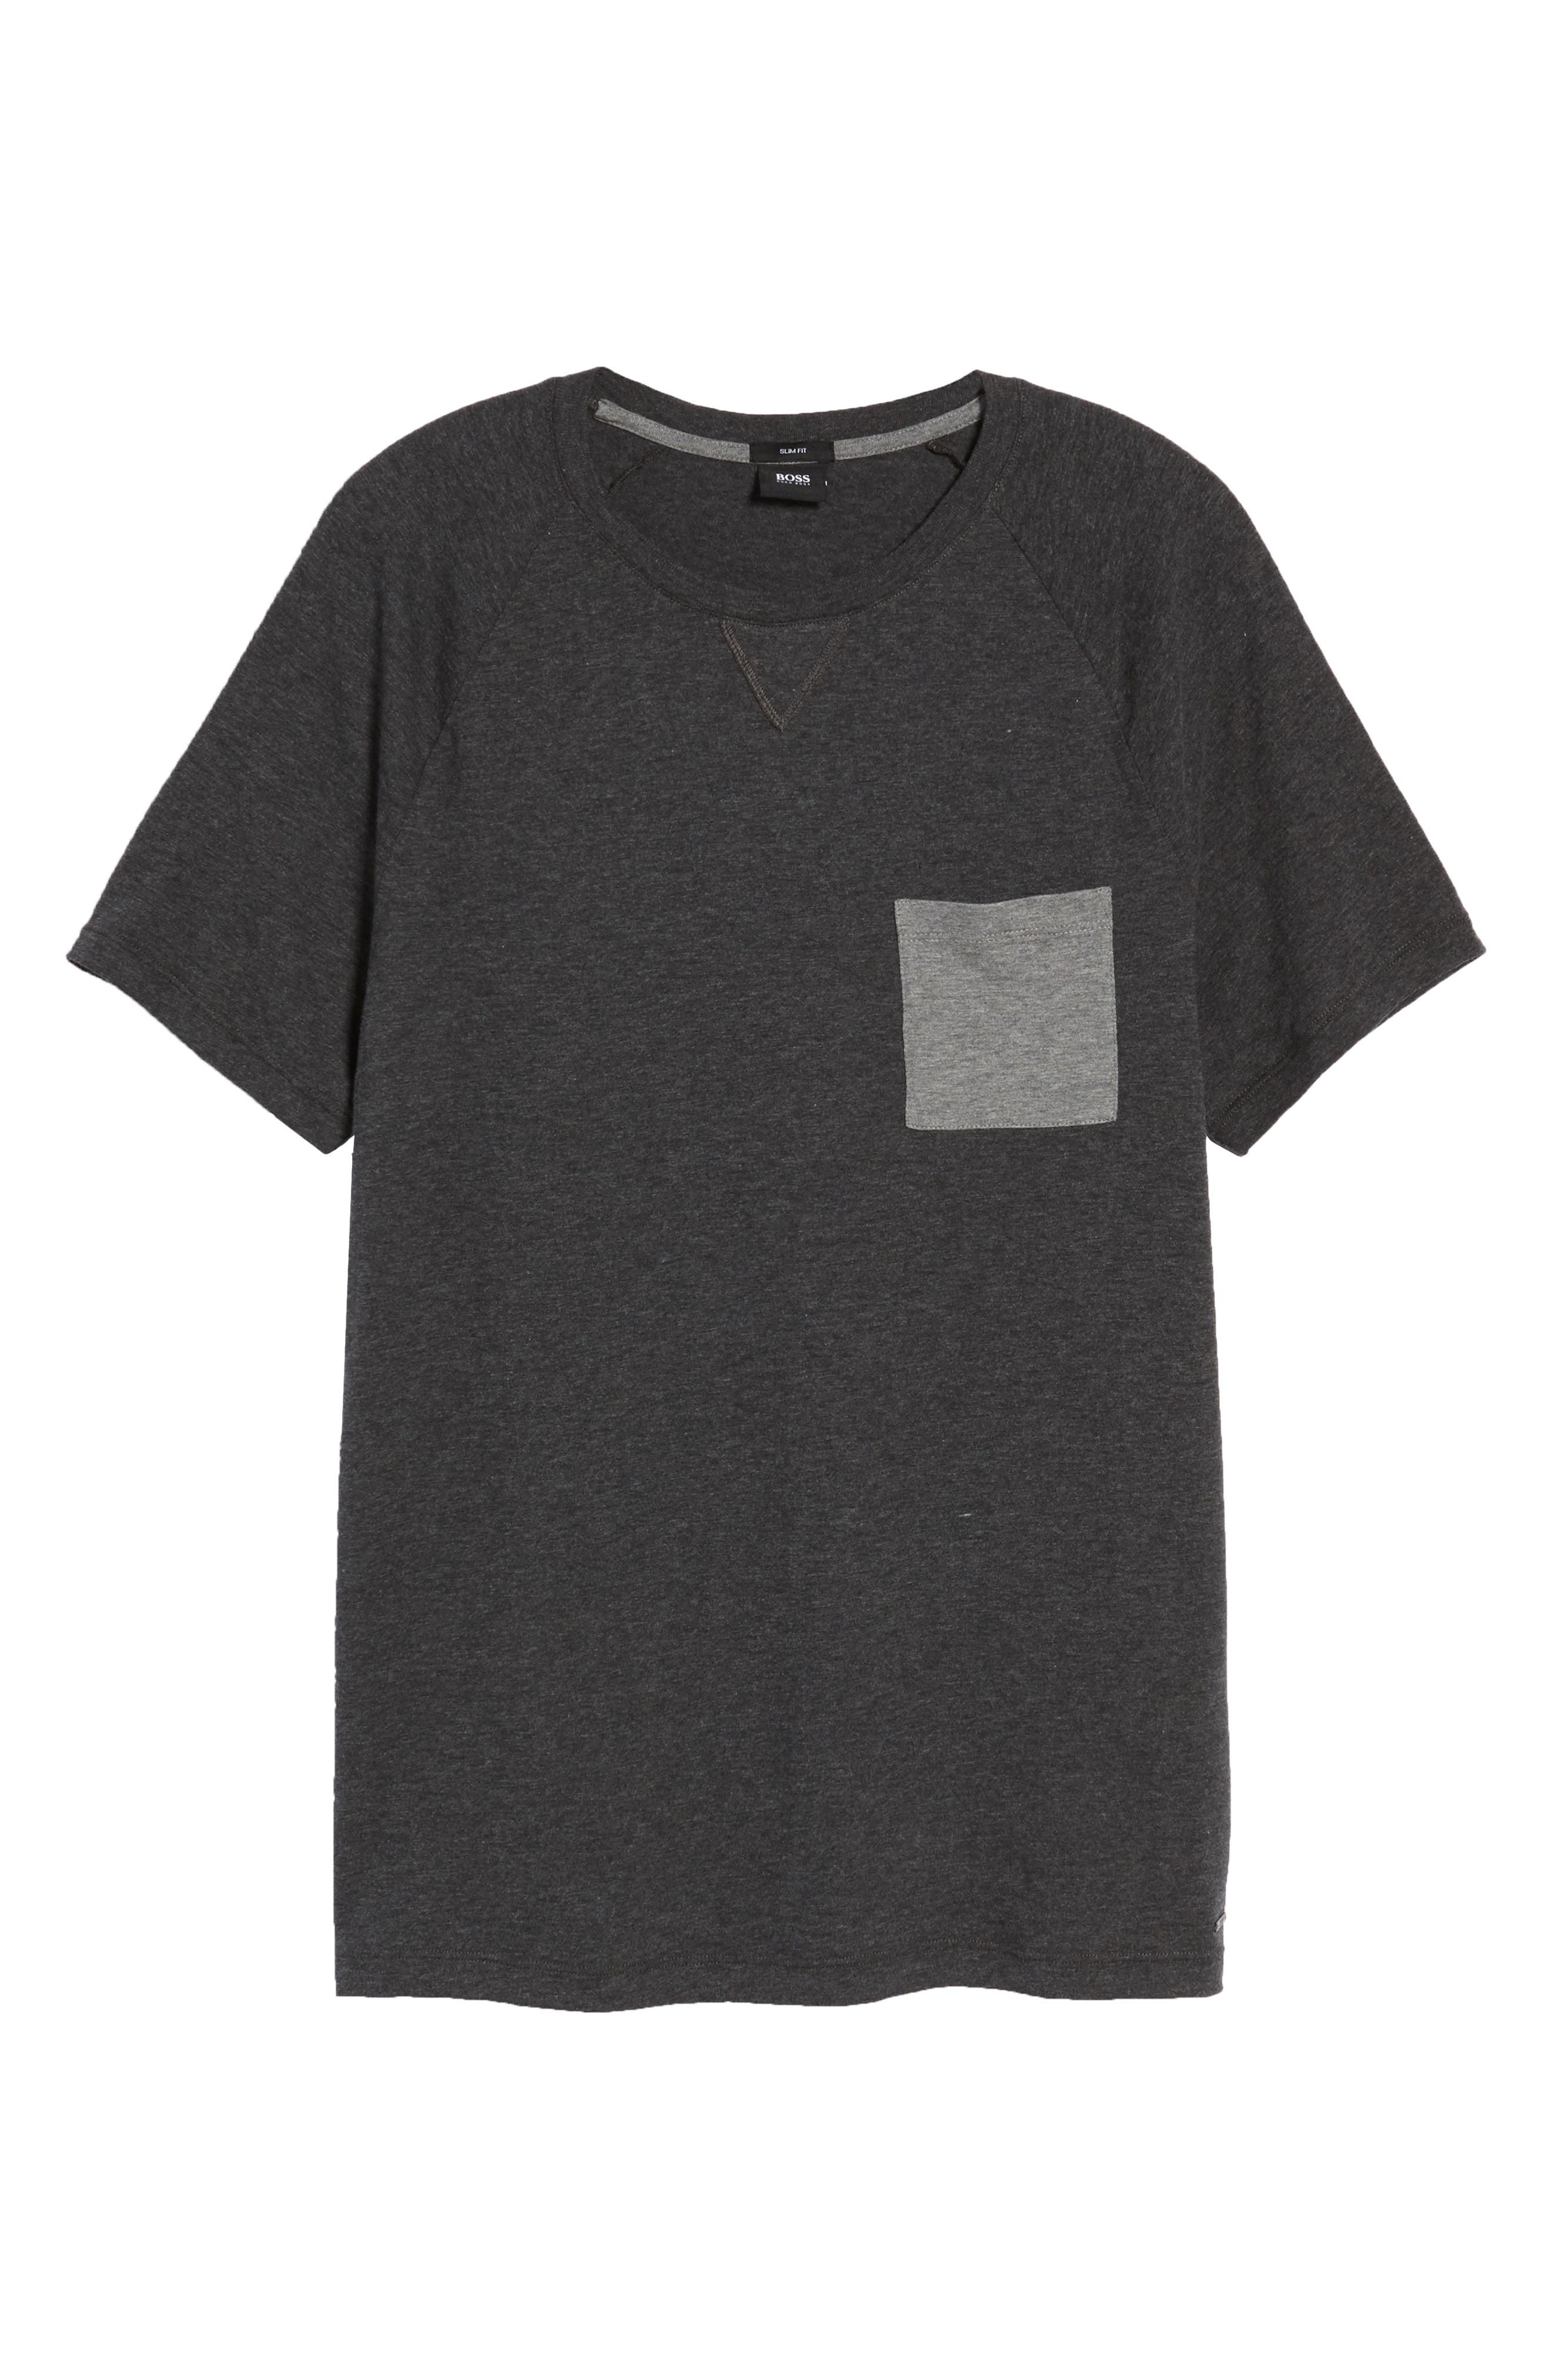 Tessler Slim Fit Pocket T-Shirt,                             Alternate thumbnail 6, color,                             001